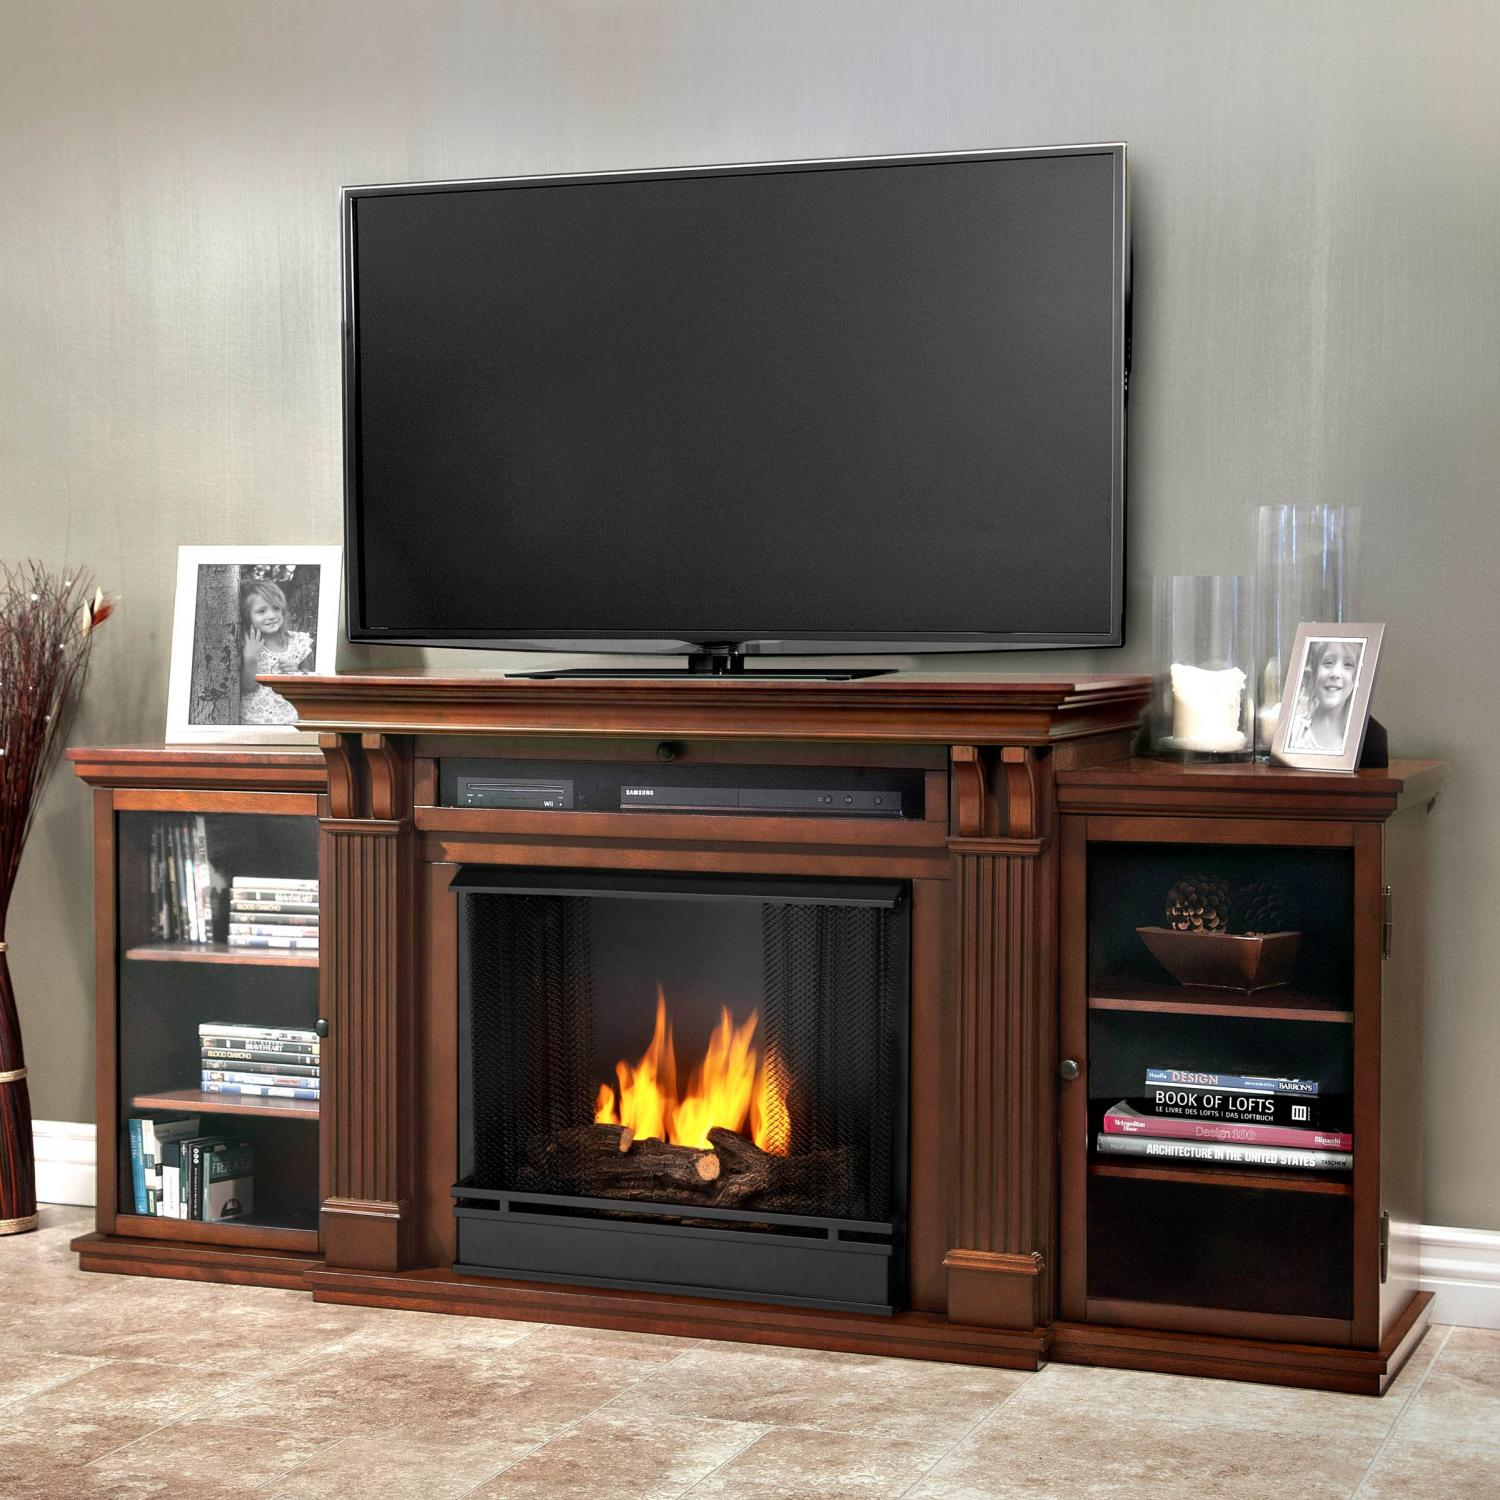 Real Flame Ashley 67-Inch Gel Fireplace Media Console - Dark Espresso